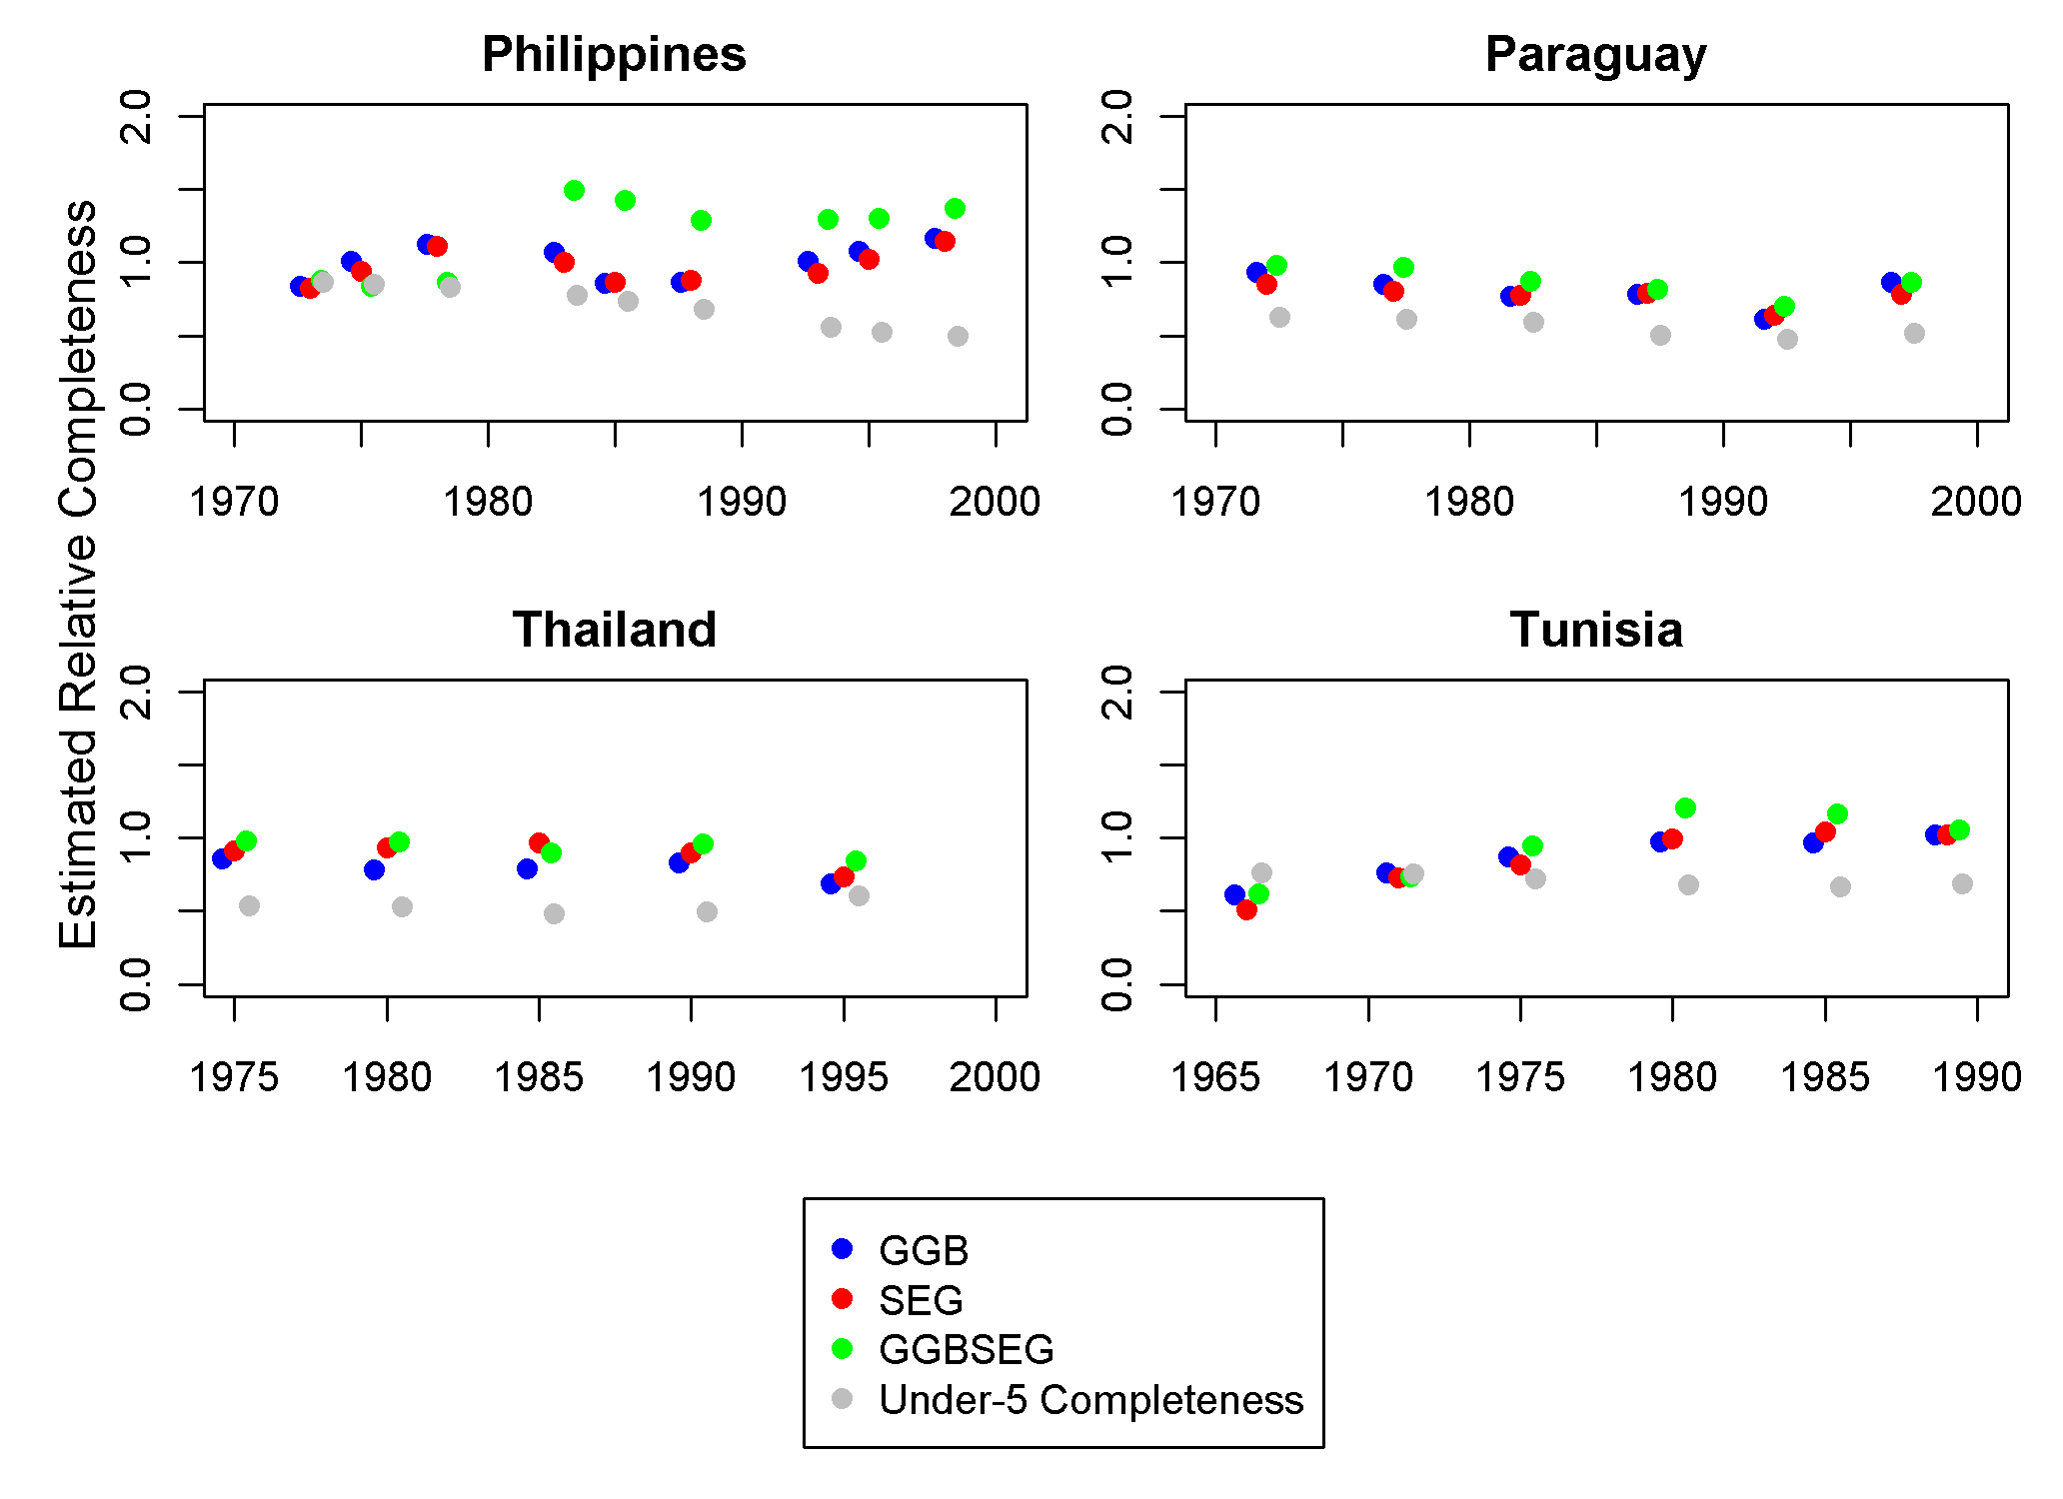 Application of optimal DDMs to the Philippines, Paraguay, Thailand, and Tunisia.